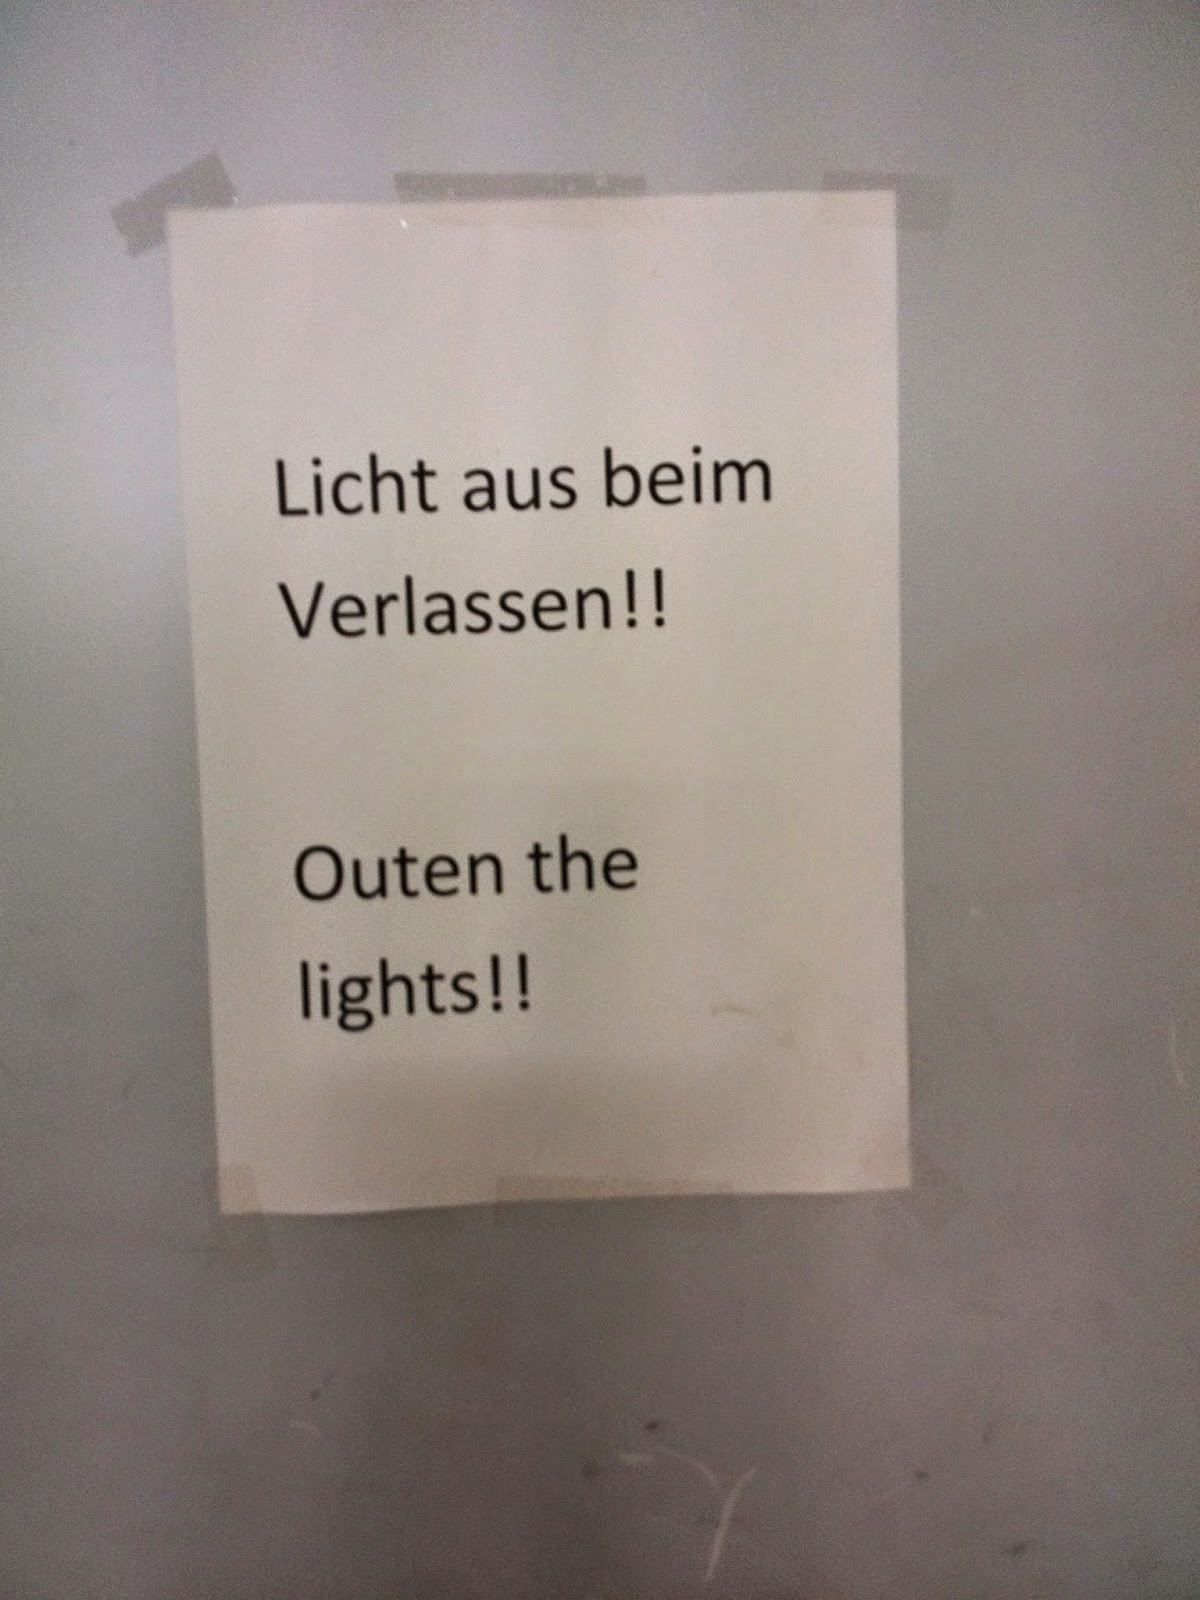 German to English mistranslation: outen the lights!